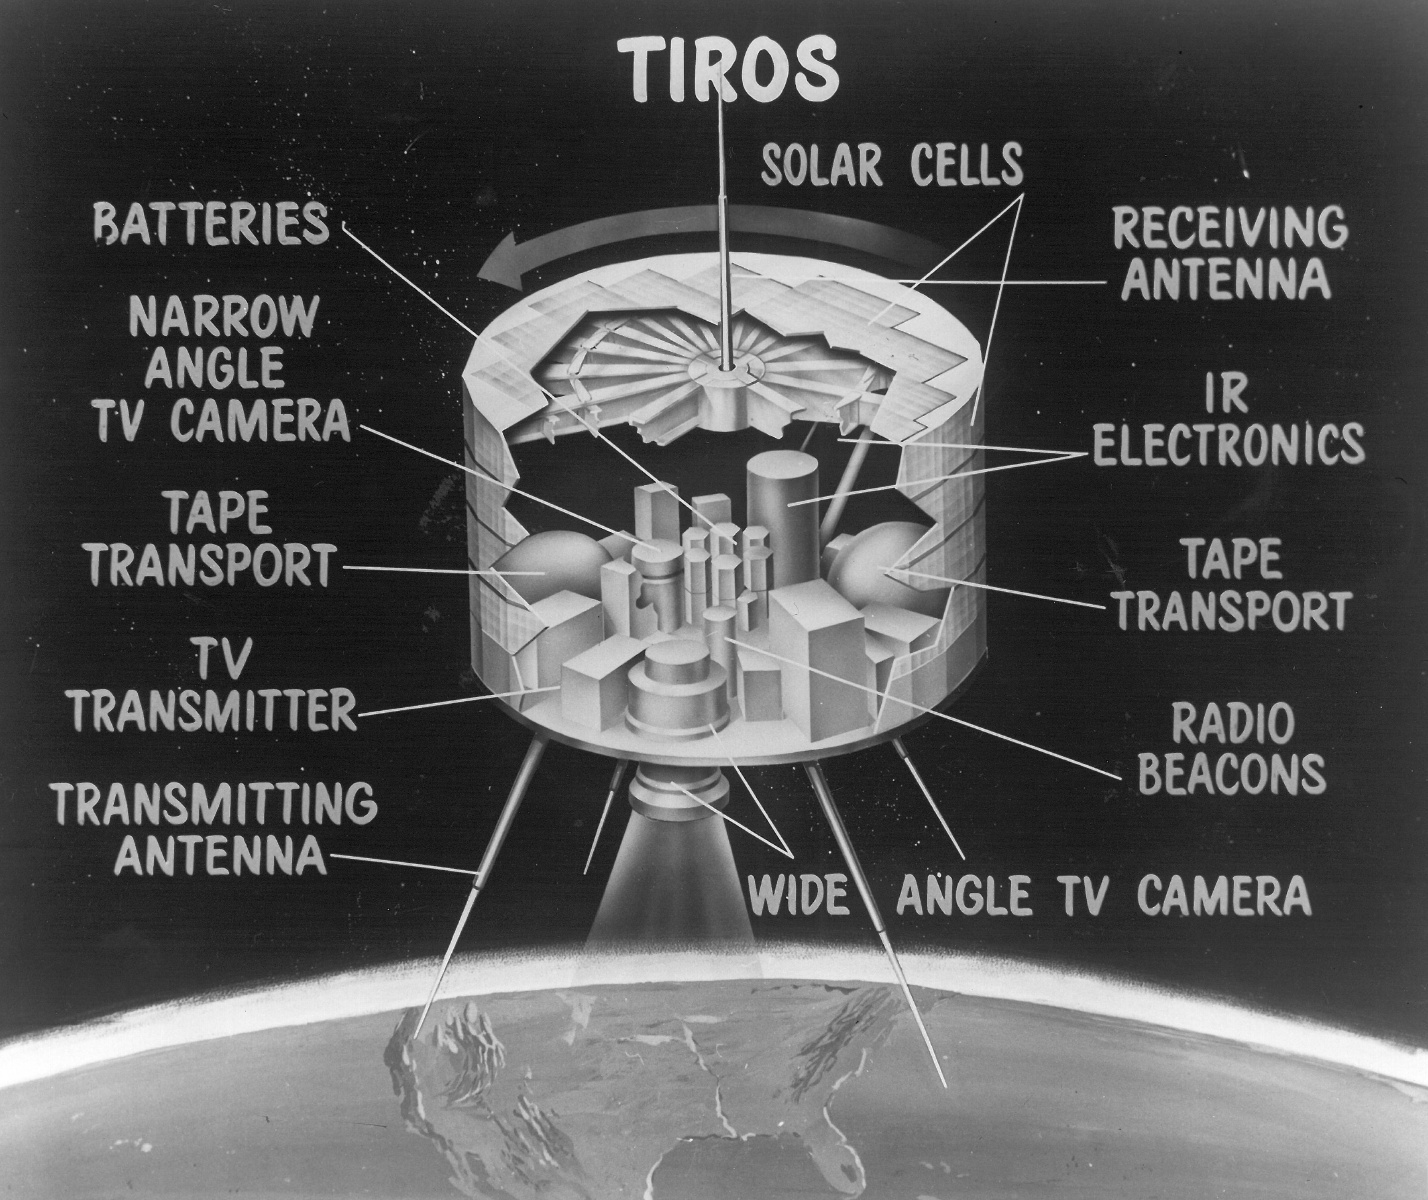 TIROS satellite instrumentation, NASA illustration tiros_1.jpg